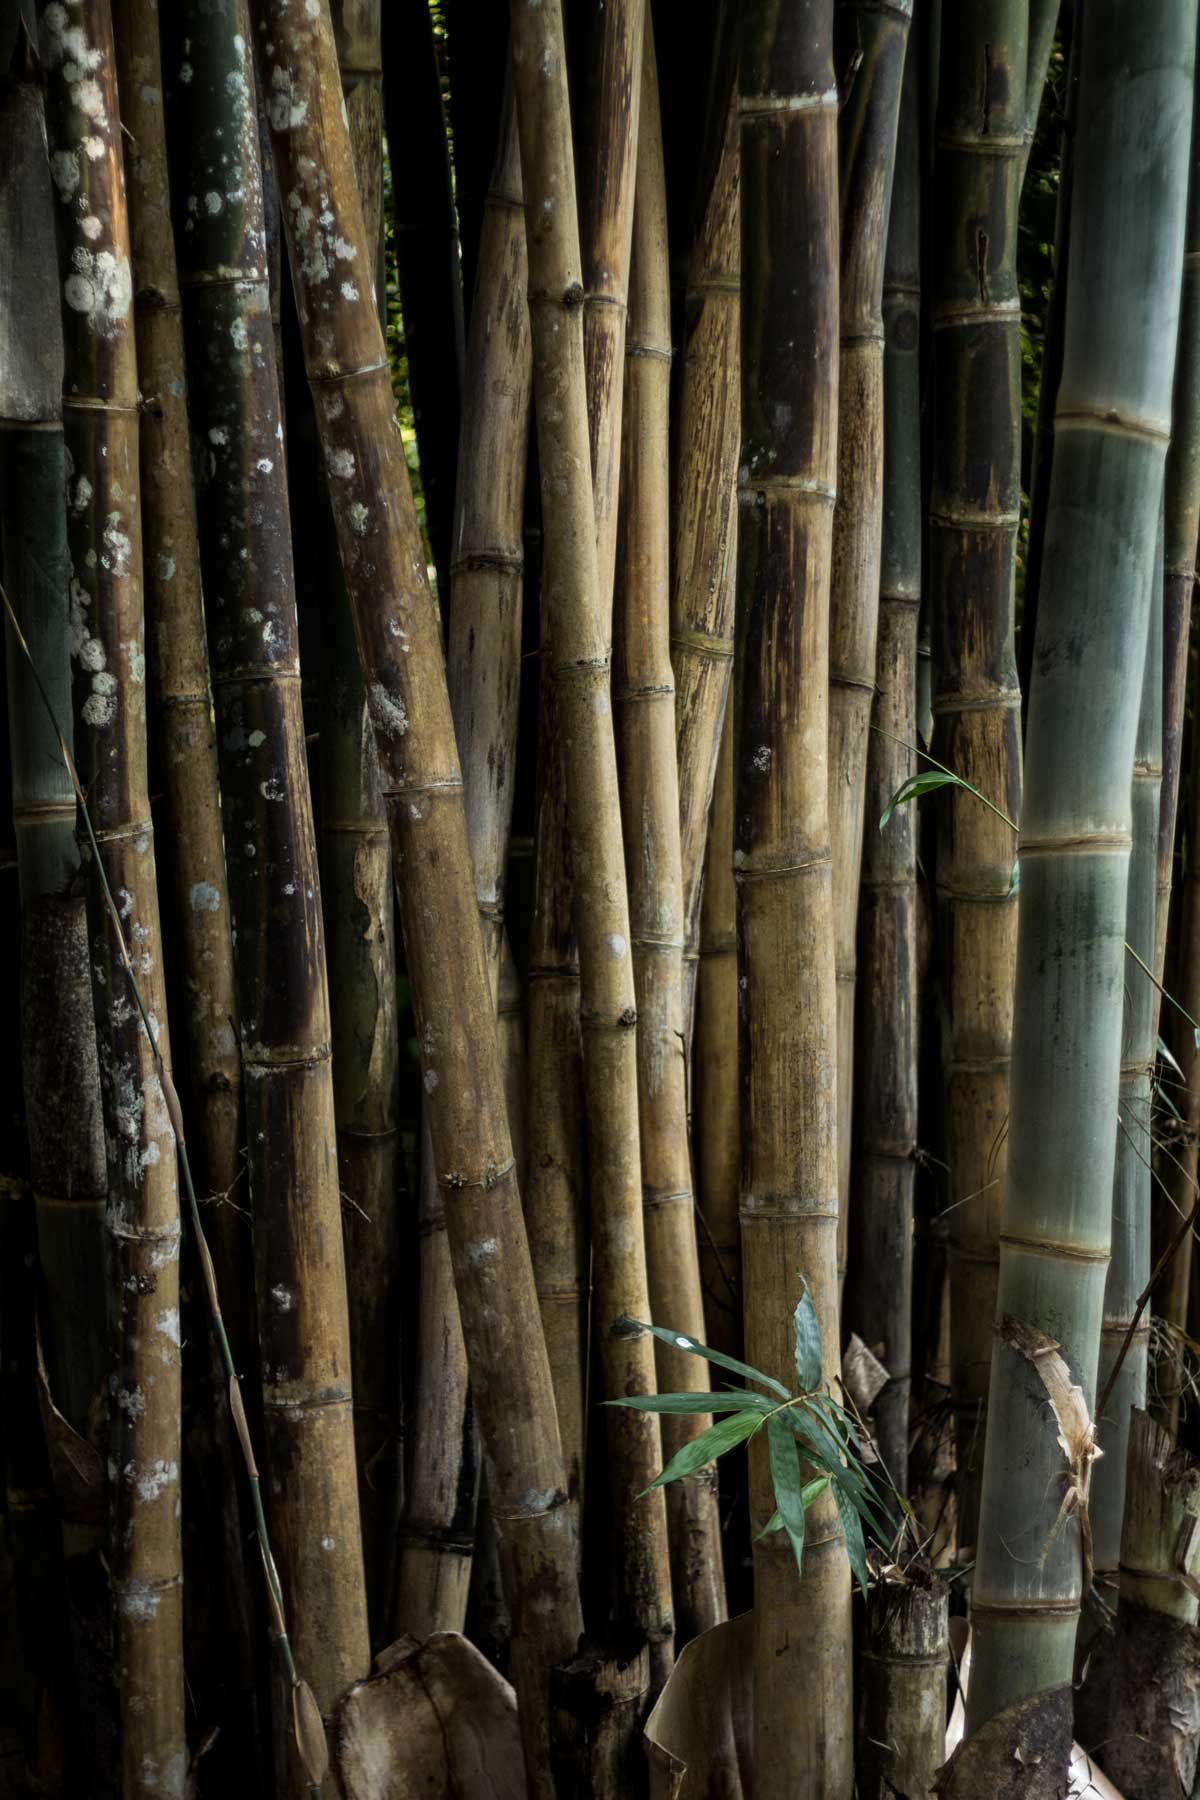 Bamboo of Mt. Suthep